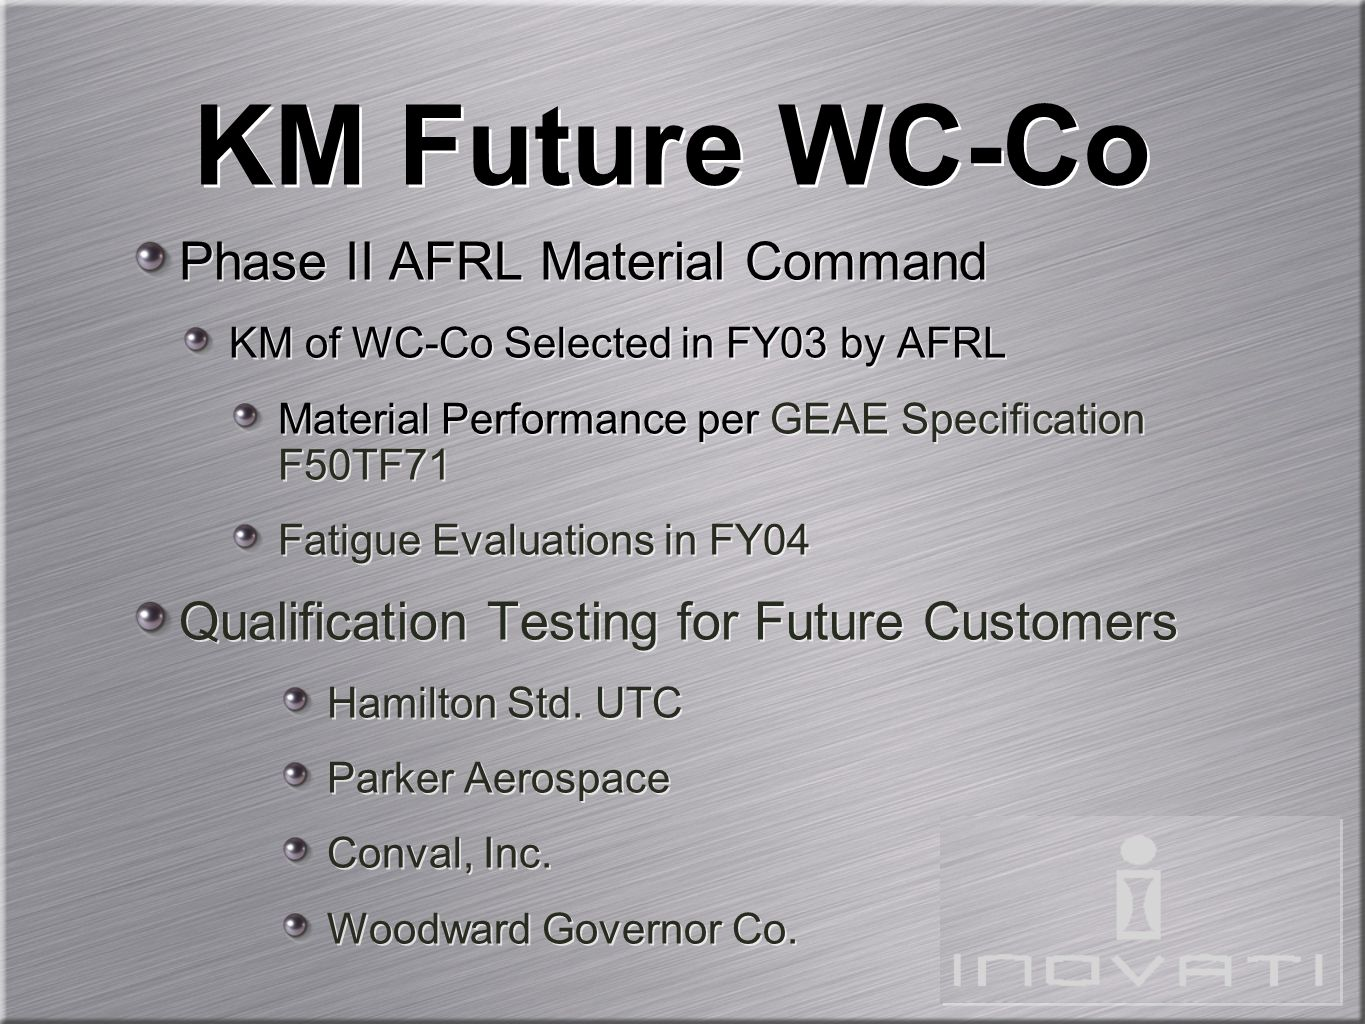 KM Future WC-Co Phase II AFRL Material Command